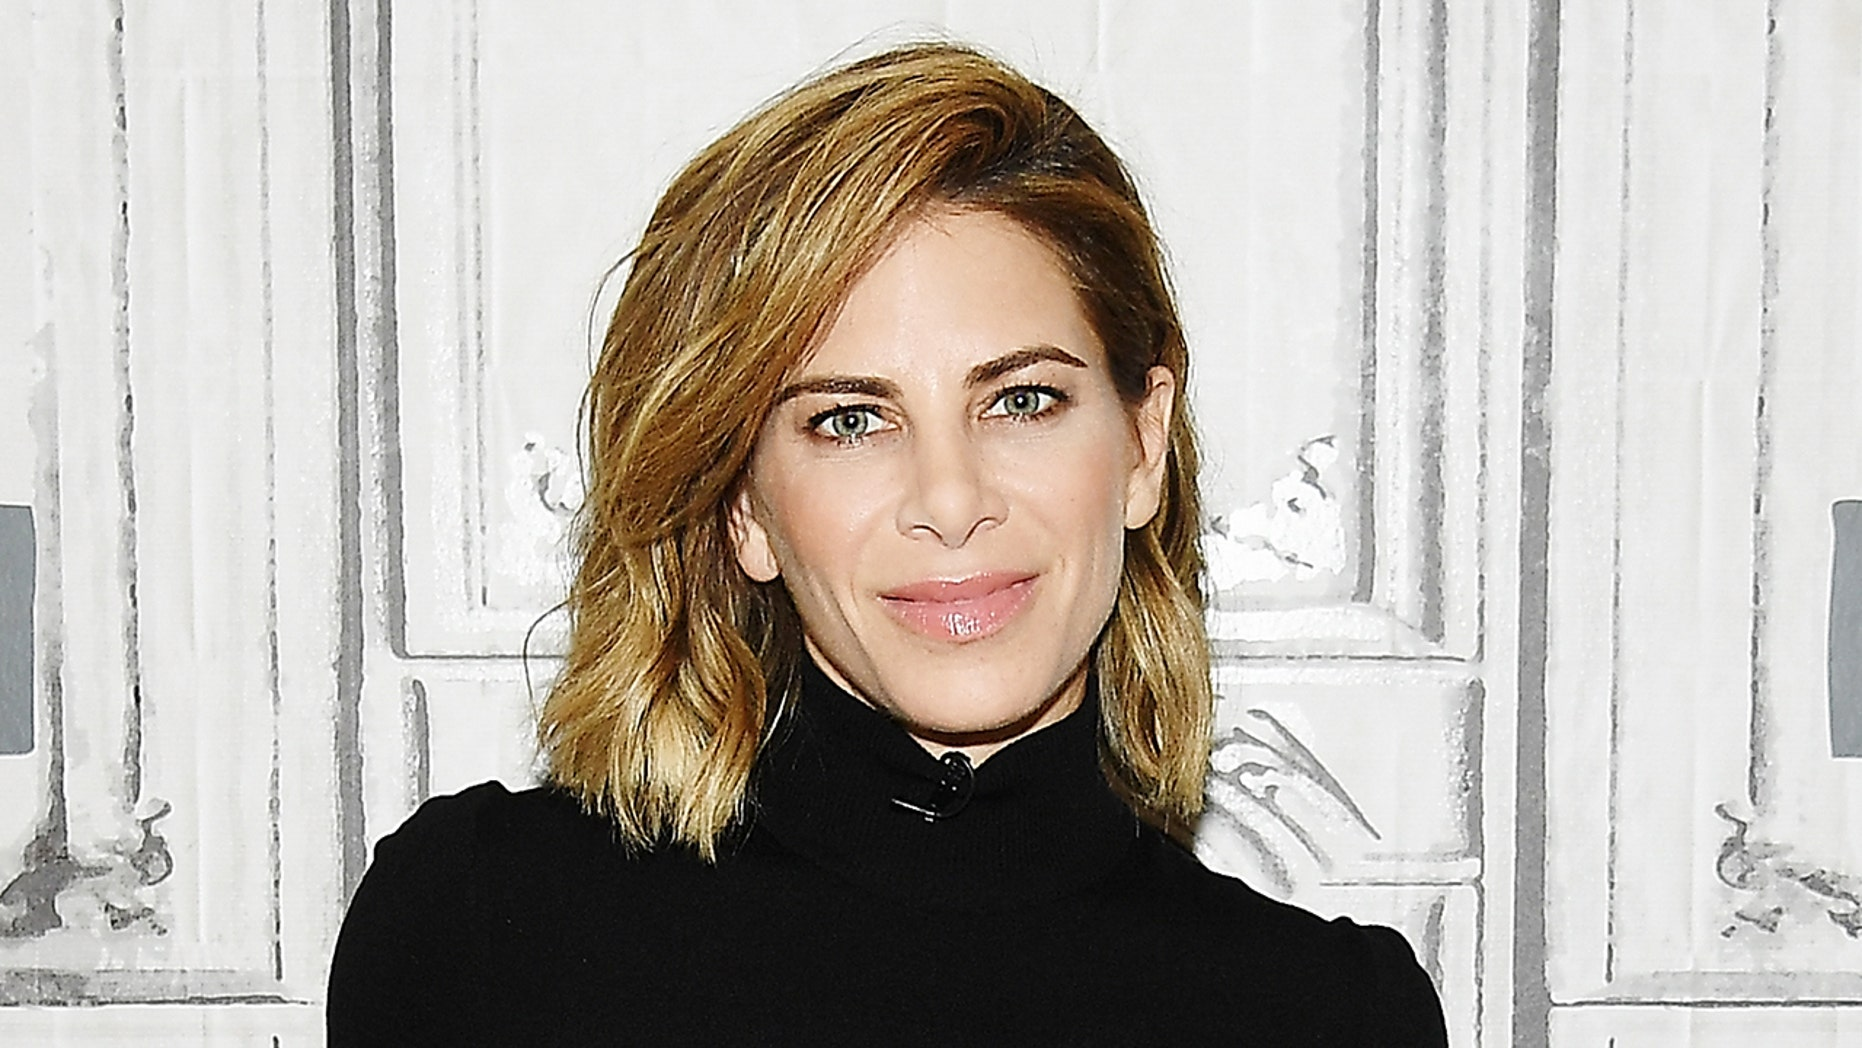 ICloud Jillian Michaels naked (96 foto and video), Topless, Paparazzi, Instagram, cameltoe 2019